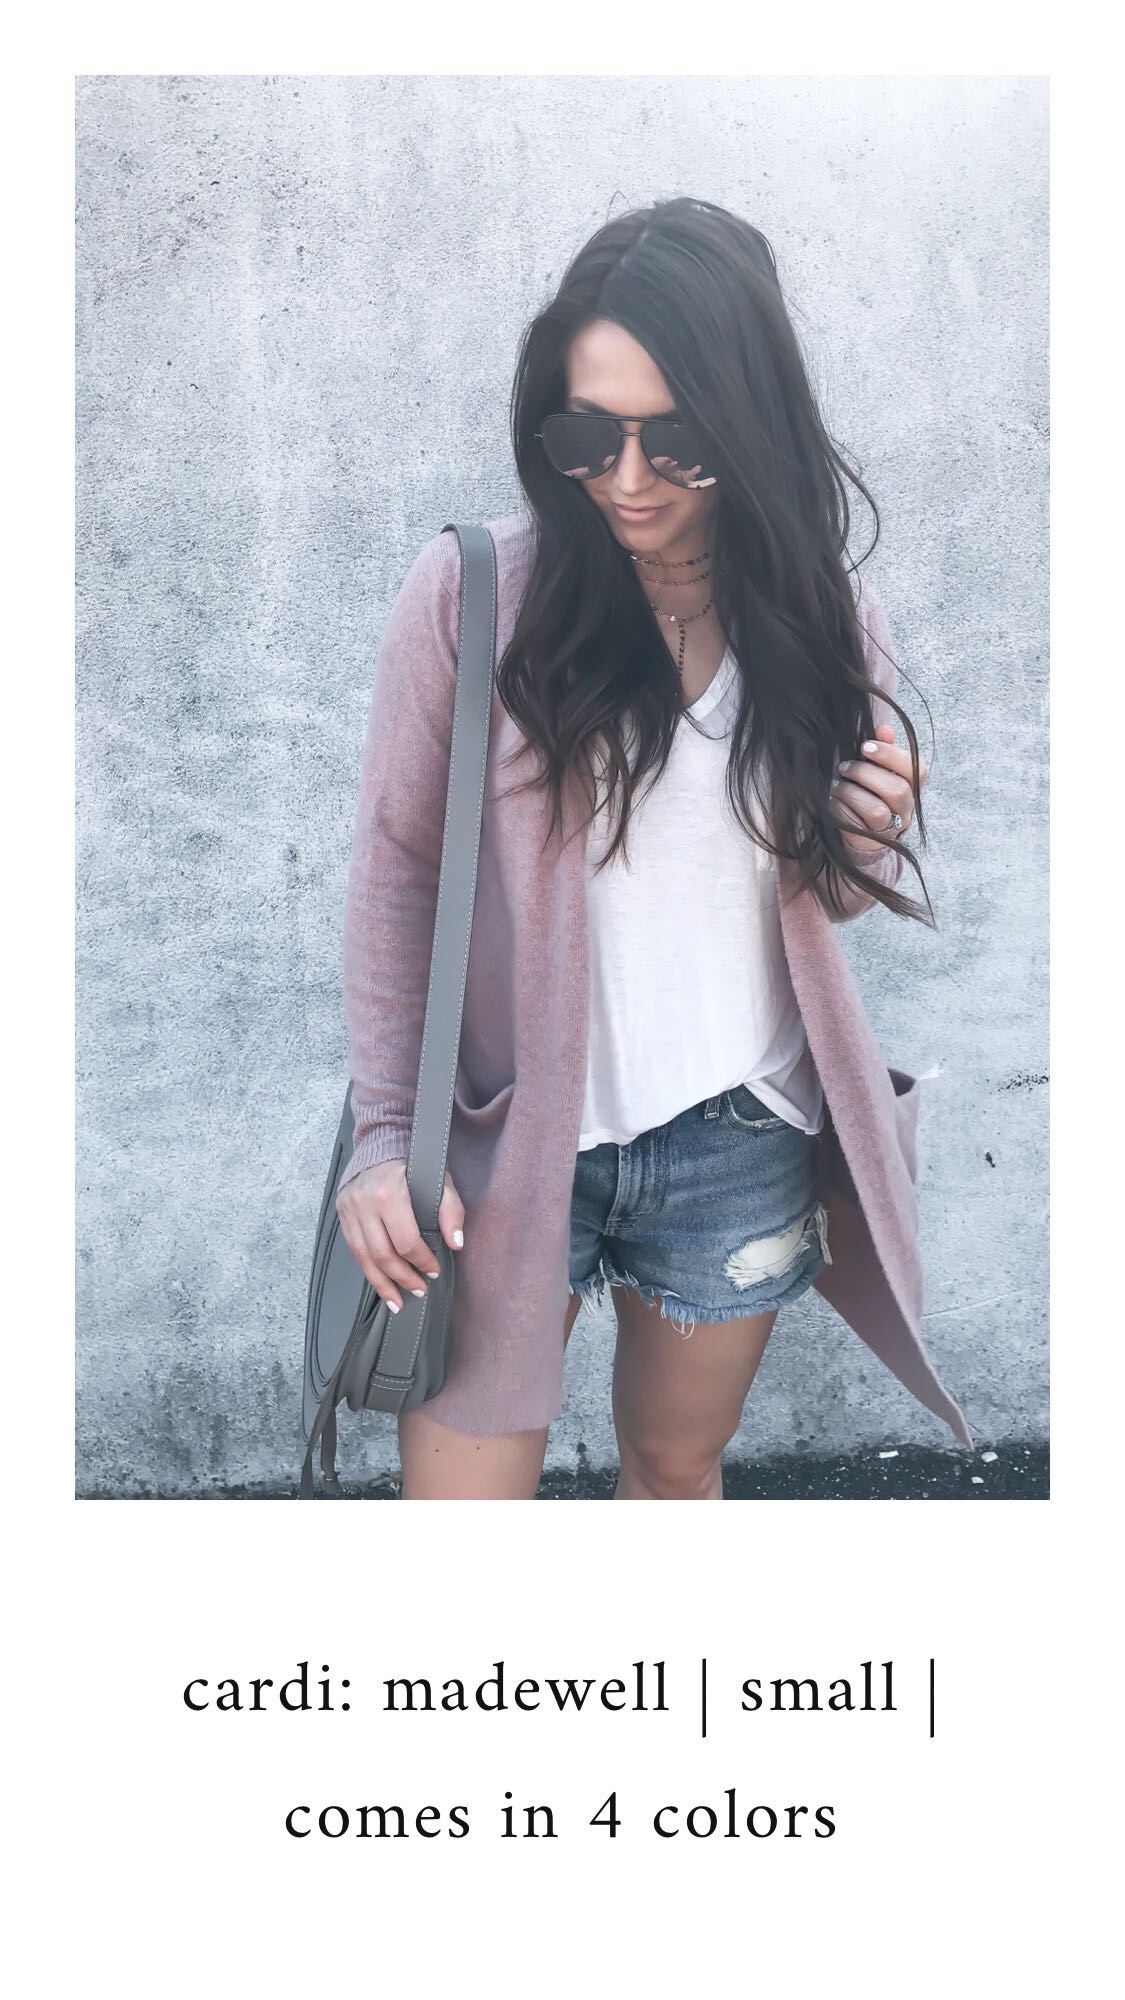 Nordstrom Anniversary Sale 2018: What I Purchased | Pine Barren Beauty | madewell cardi, basic white tee, denim cutoffs, fall transition outfit idea